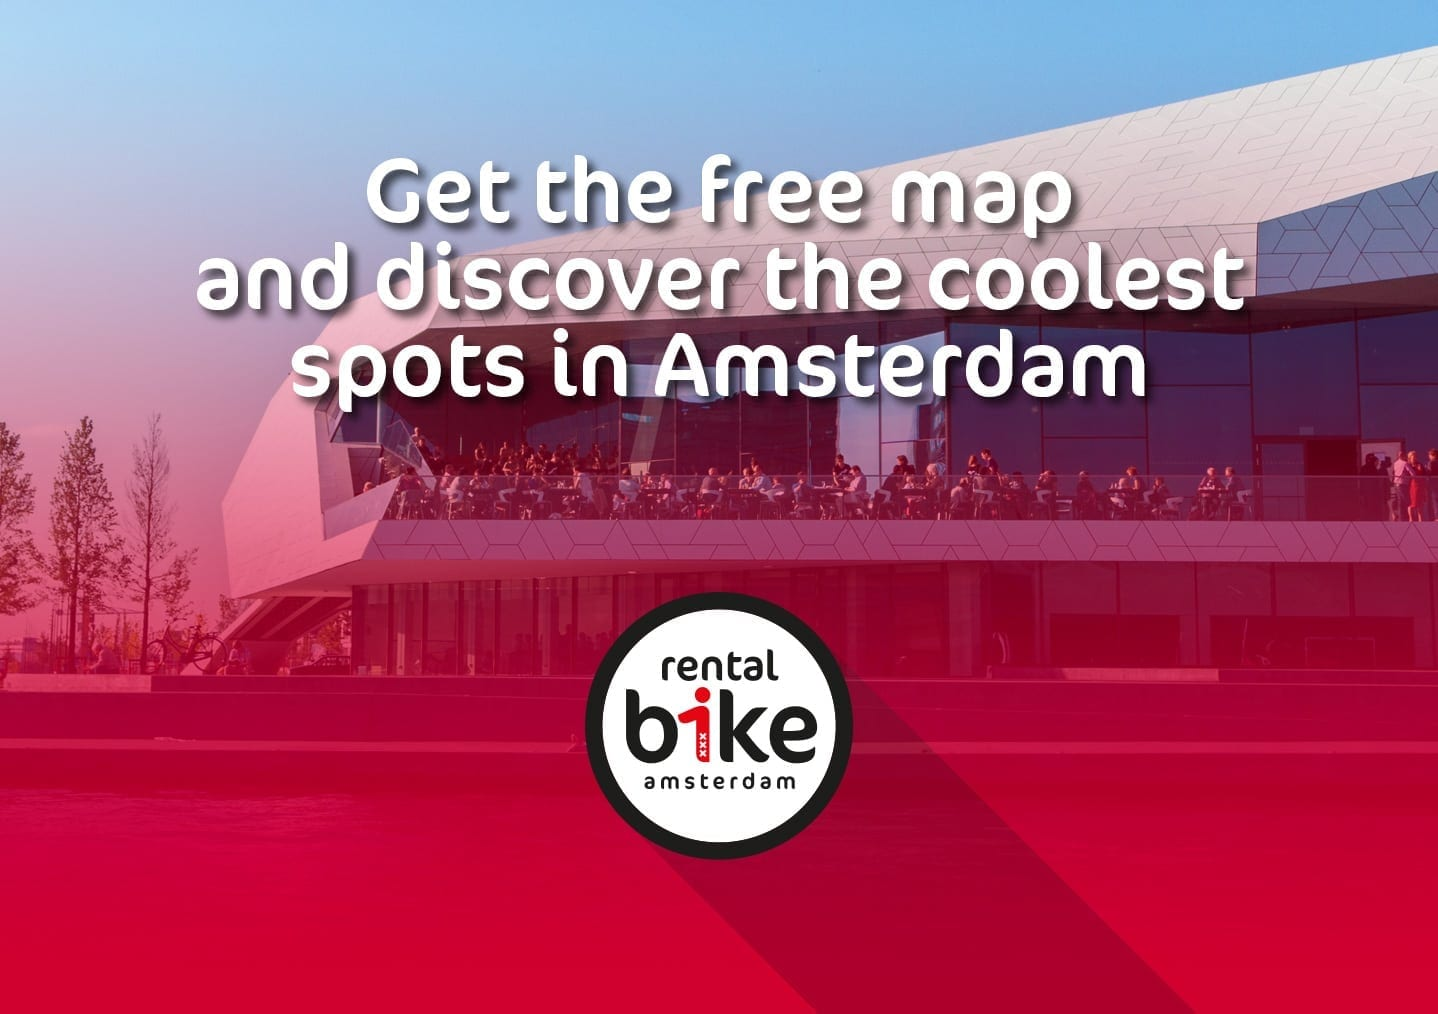 Get the free rentalbike map and discover the coolest spots in Amsterdam